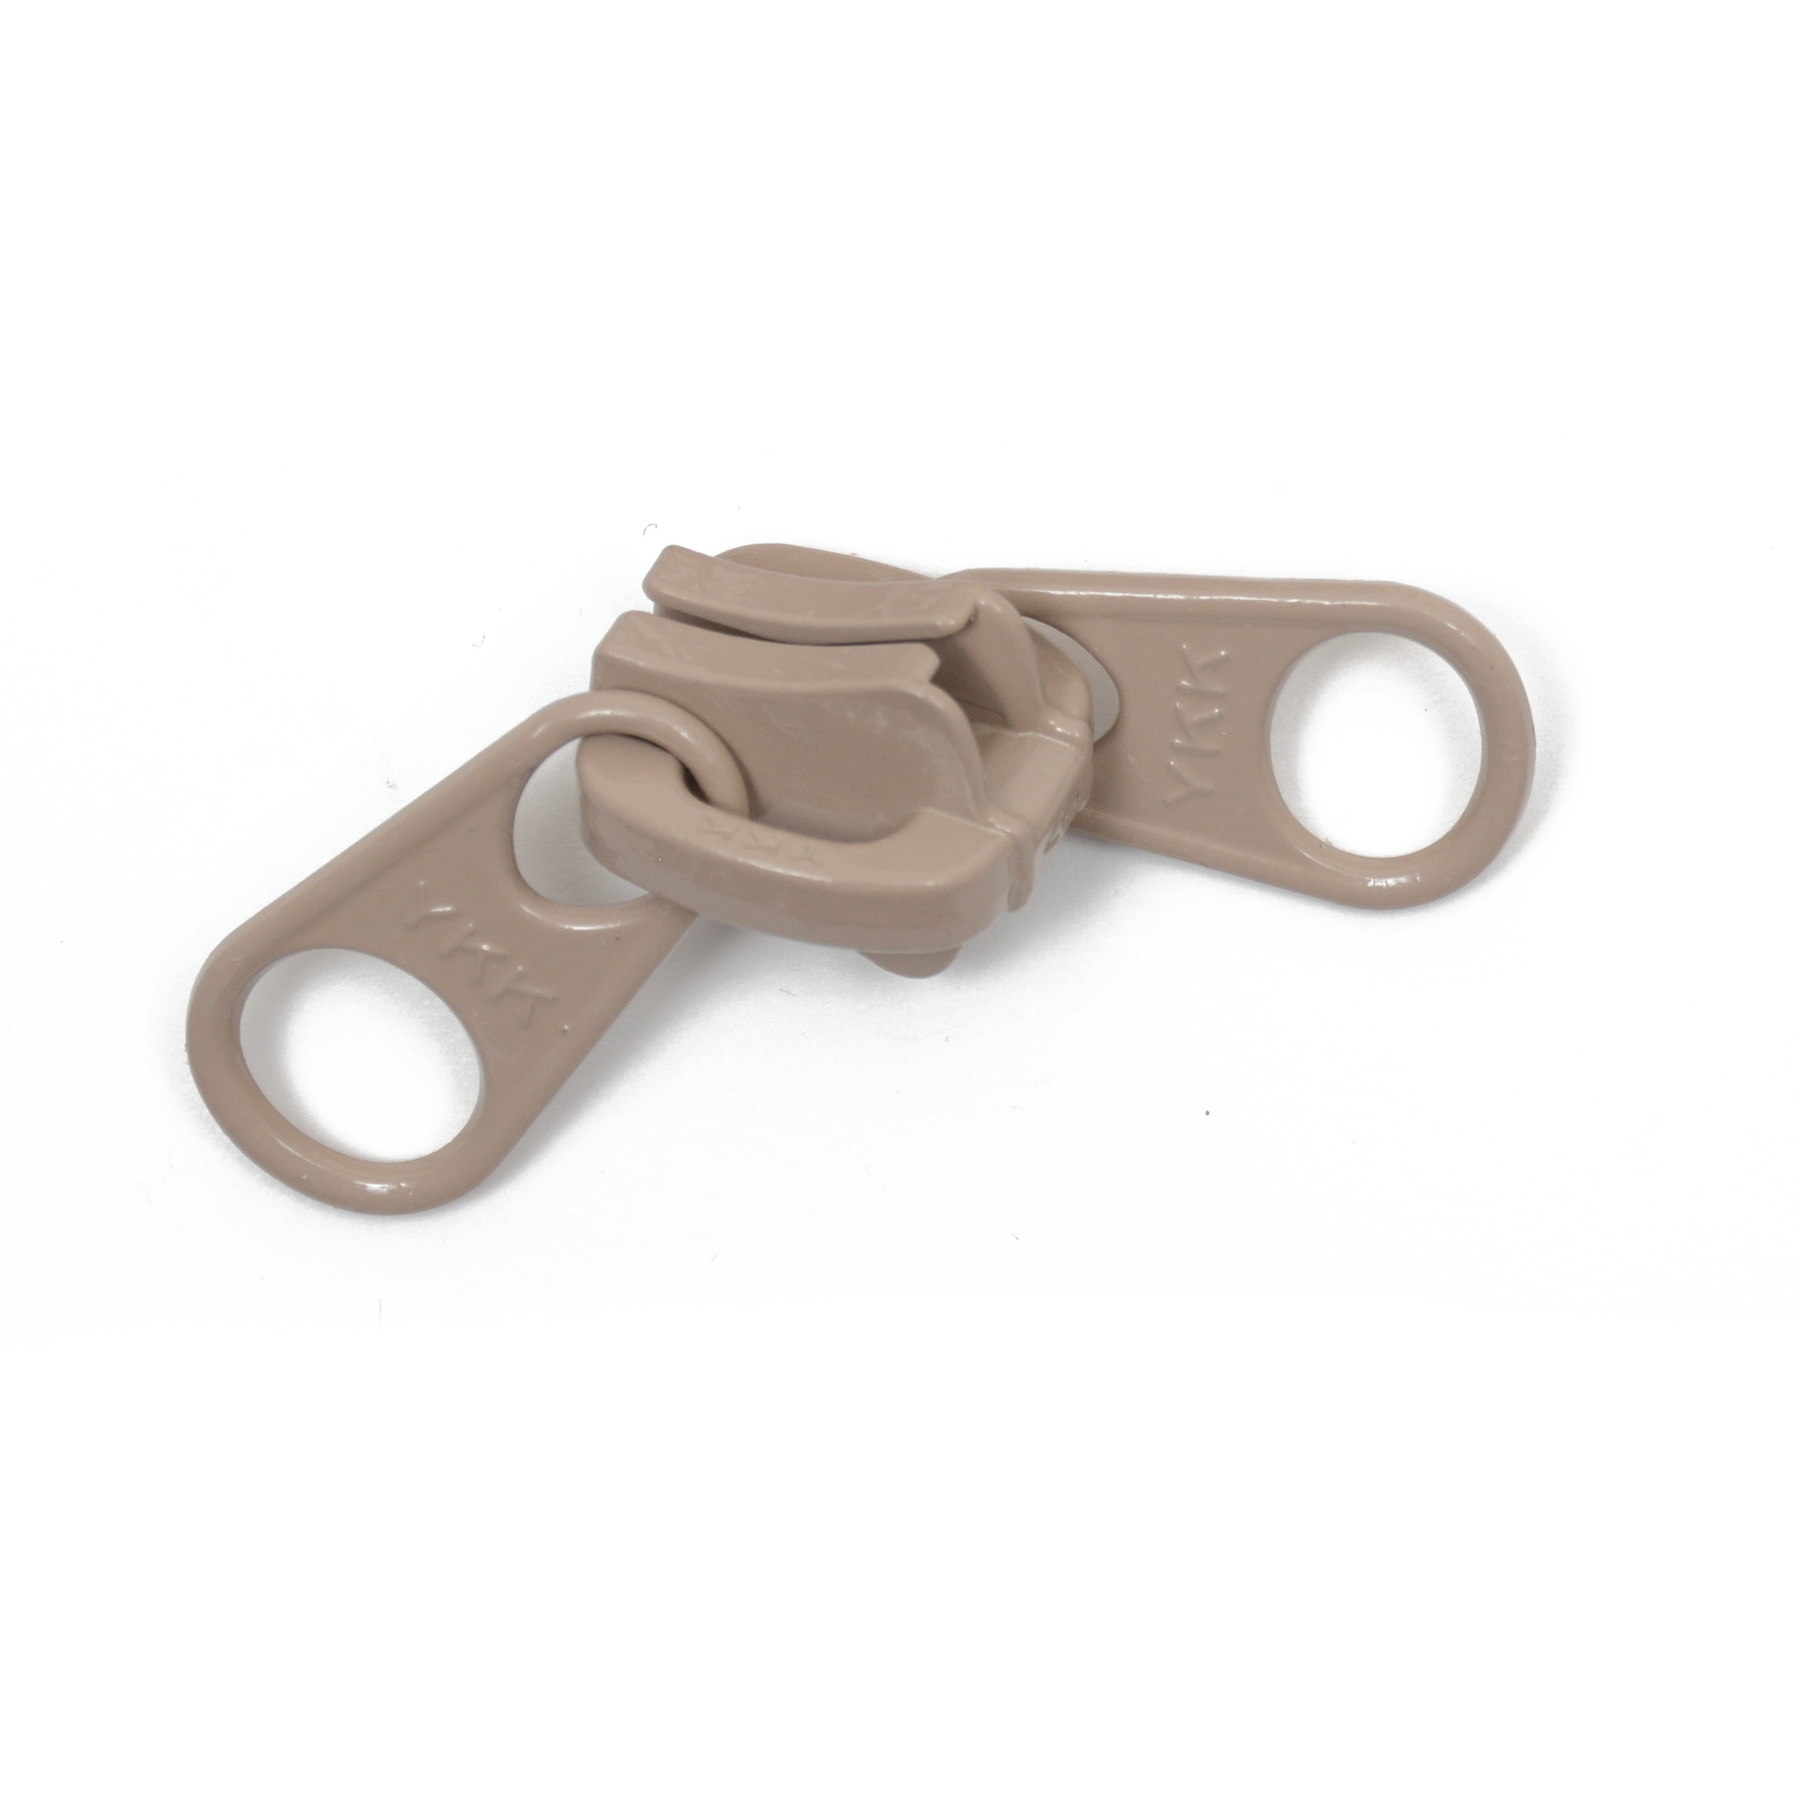 #10 YKK Vislon Slider Non-Locking  2-Tab - Beige. 2 tab non-locking slider used with #10 beige Vislon zipper chain. This product is sold as a 25 pack.